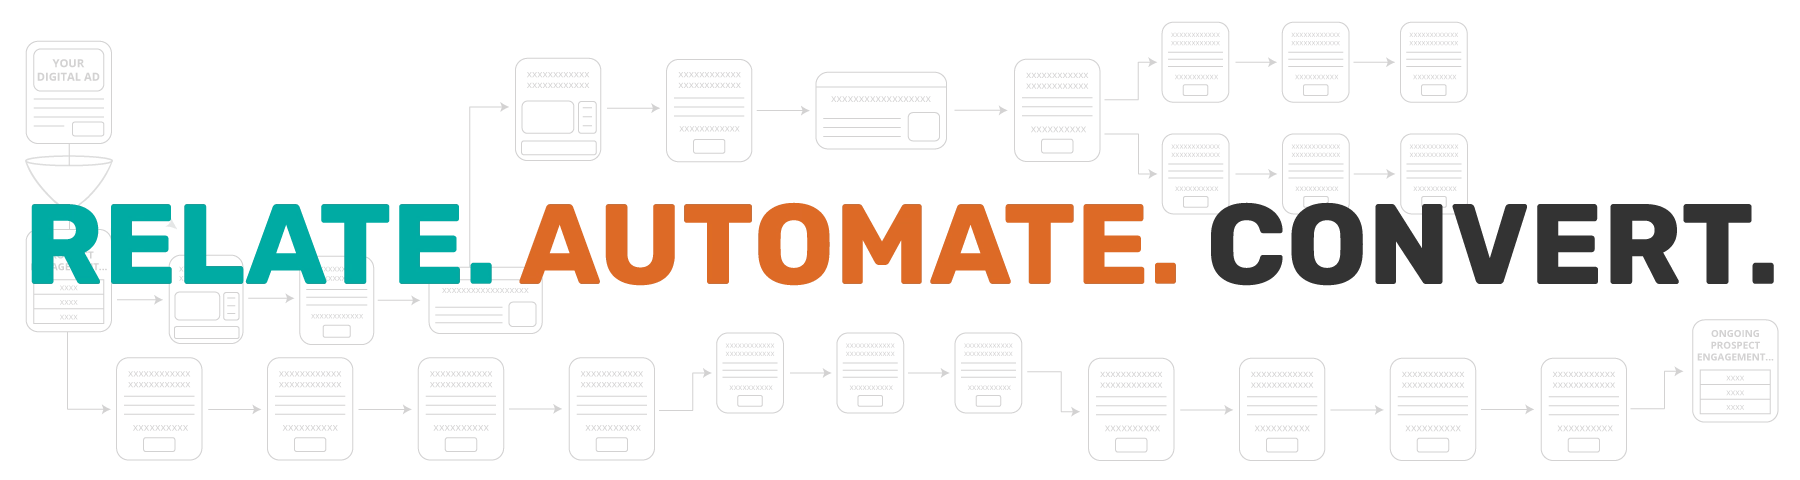 Relate. Automate. Convert.